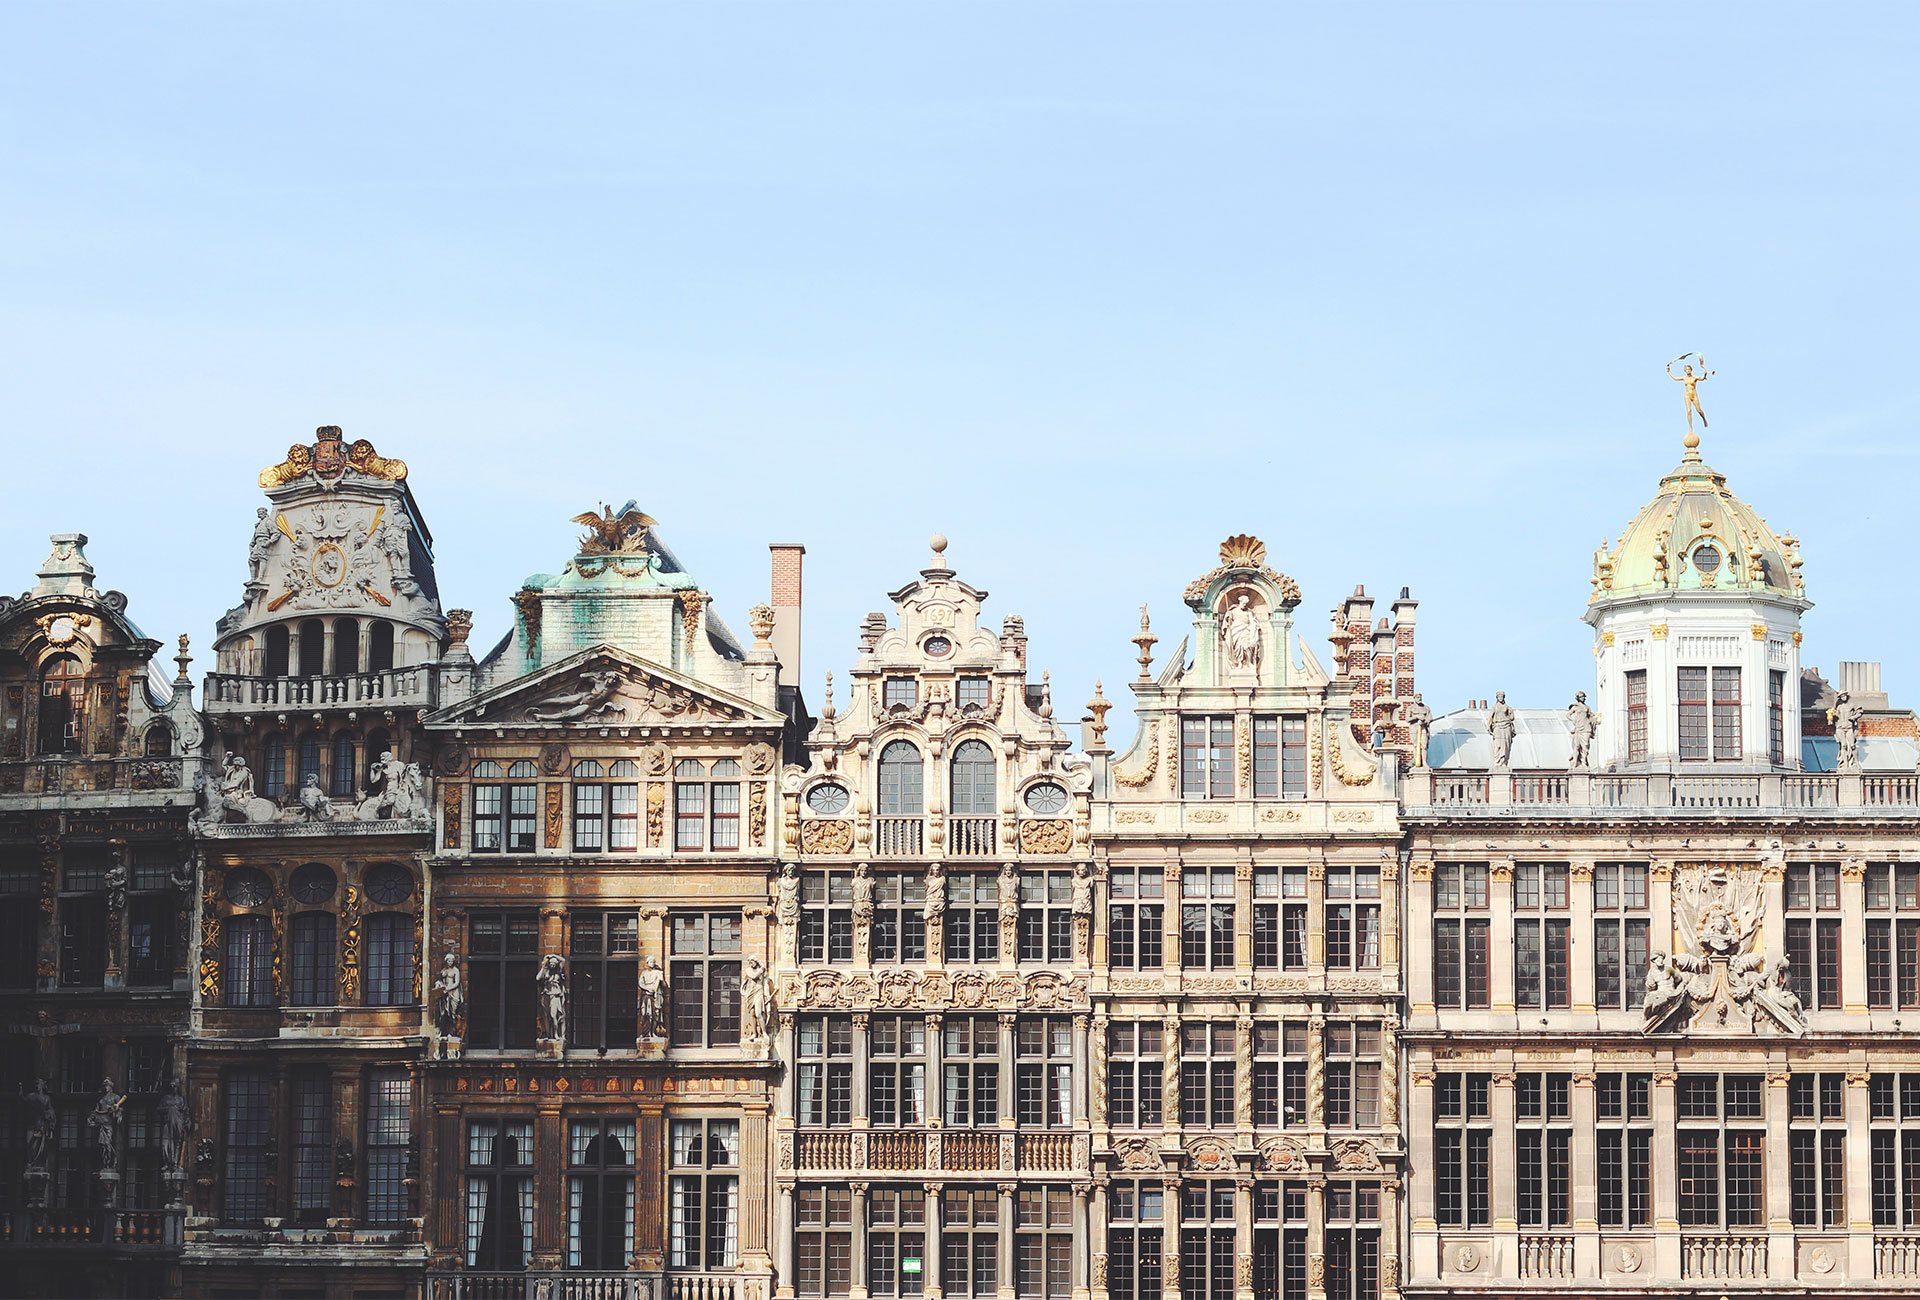 5 TIPS (plus one) FOR A DESIGN TRIP TO BRUSSELS